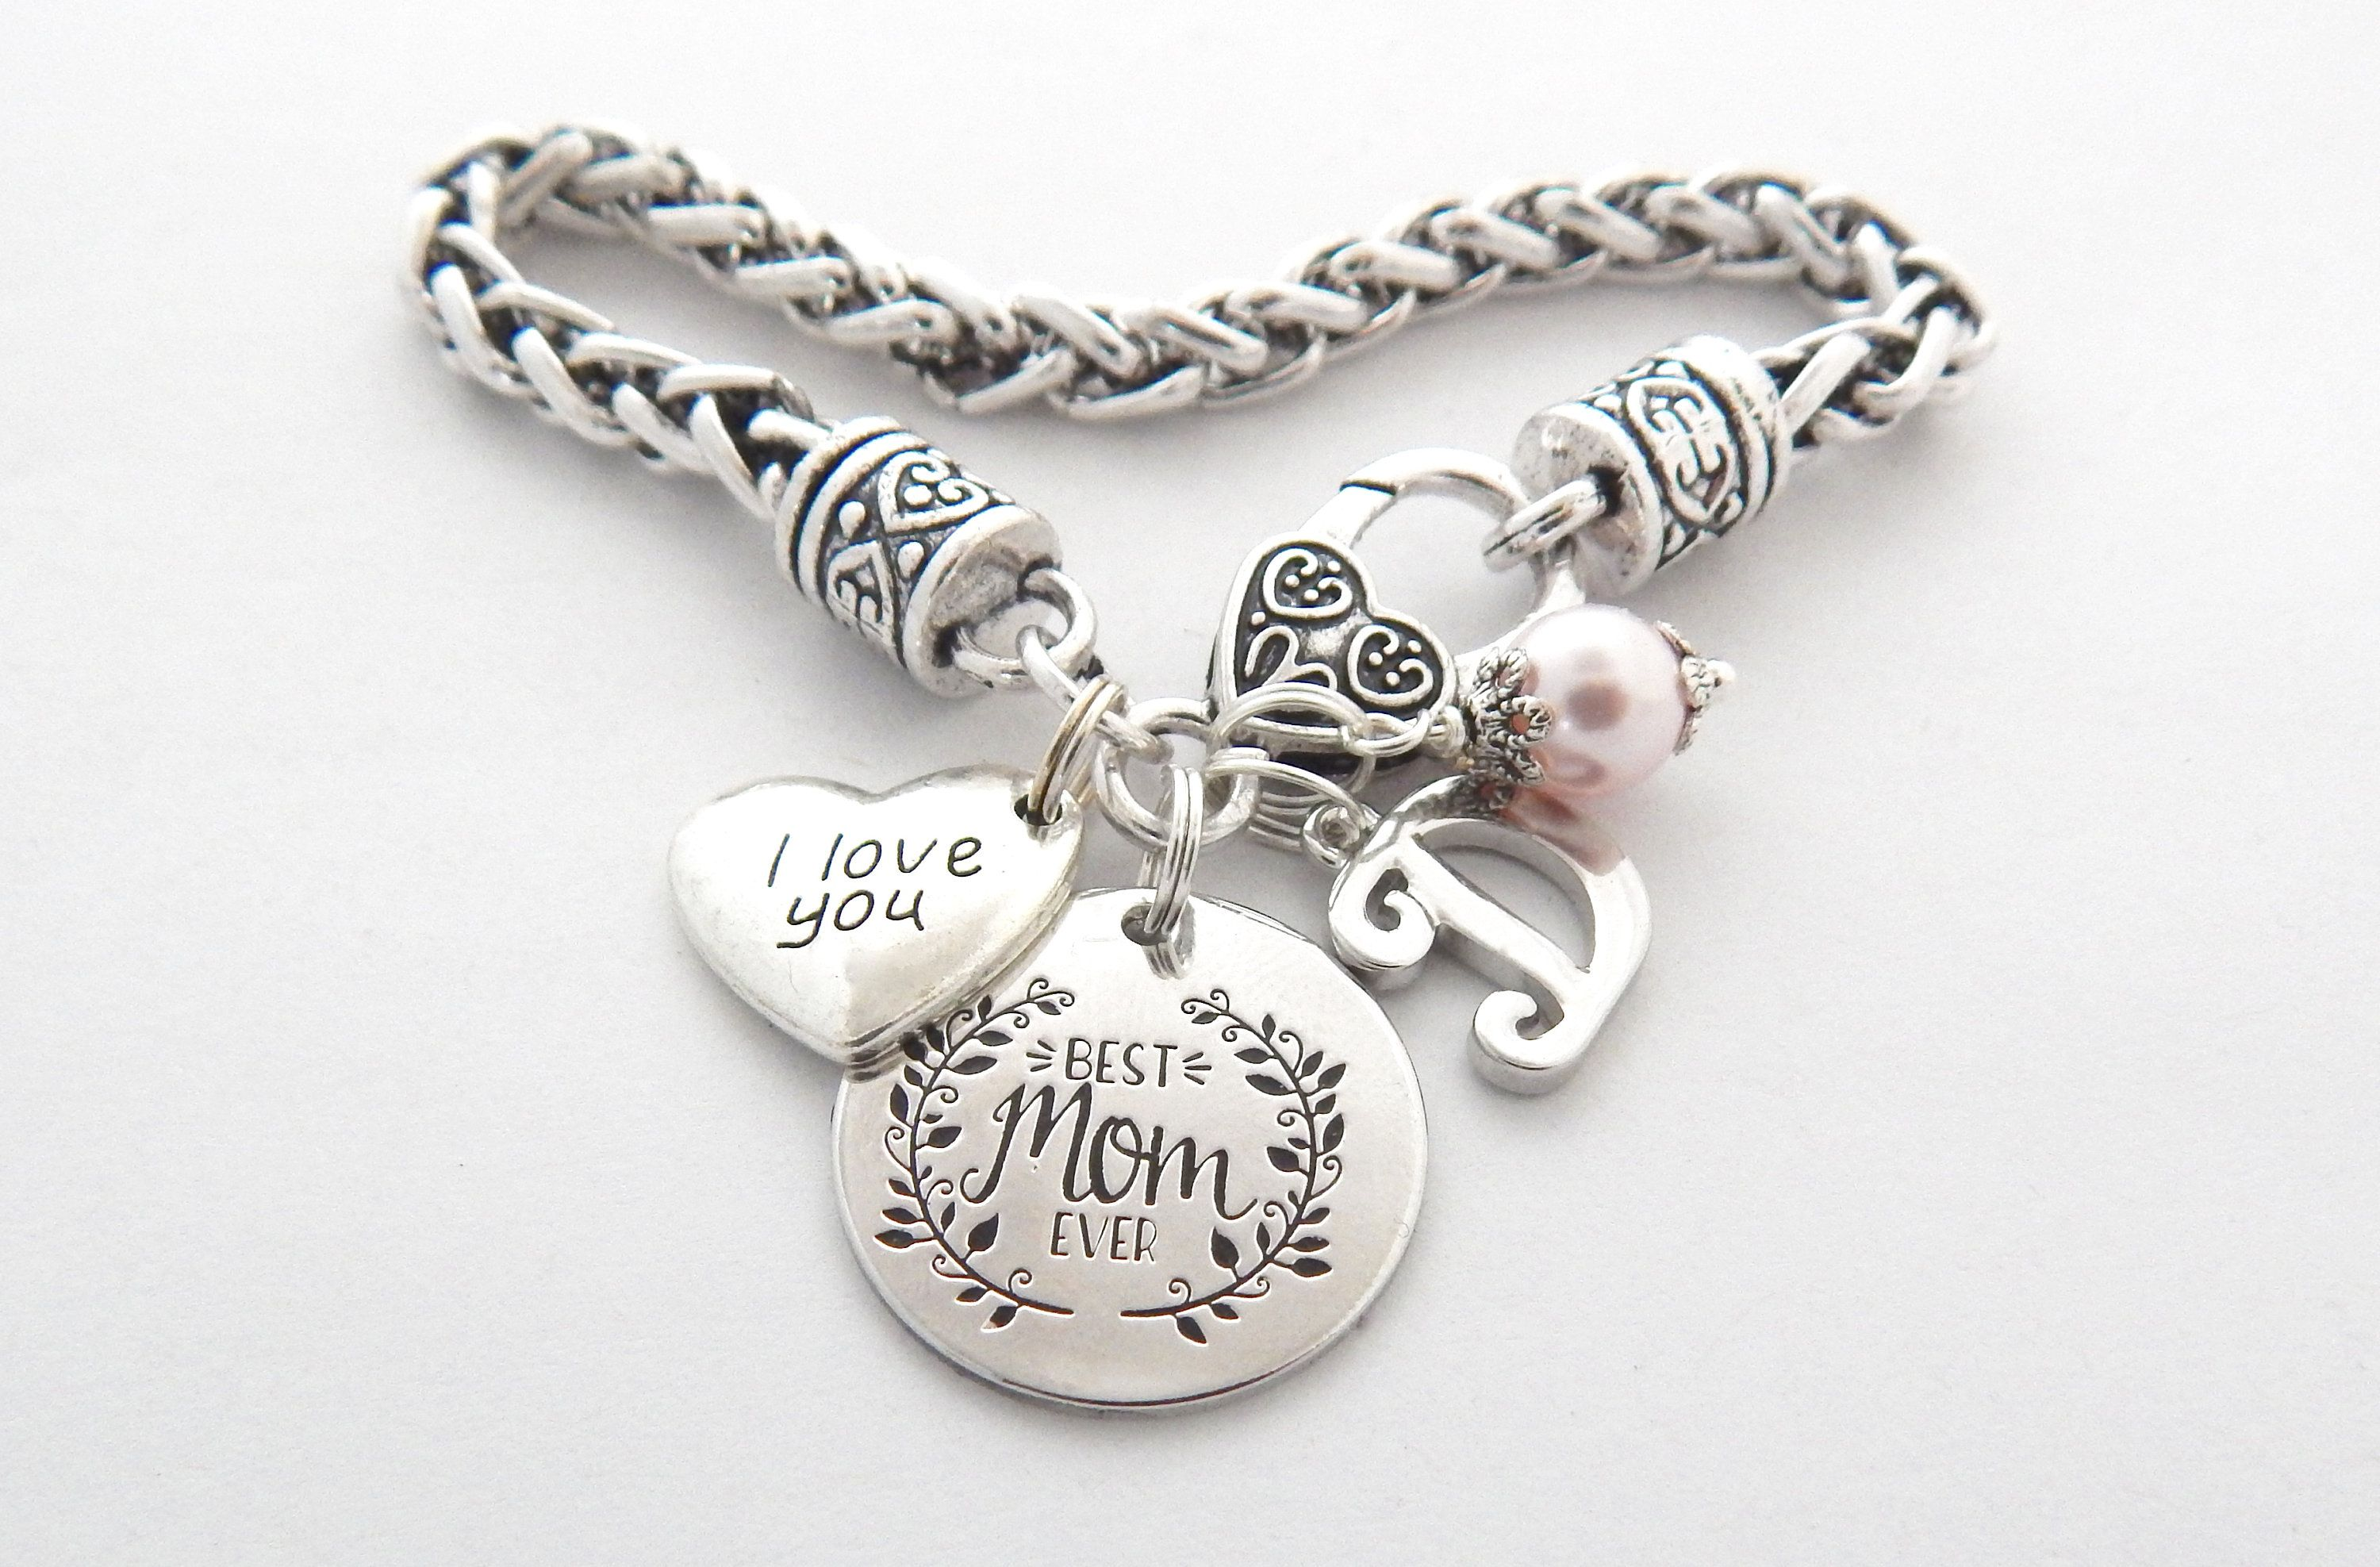 hand silver pin bracelet pinterest you love pendant s day more jewelry gift mother stamped